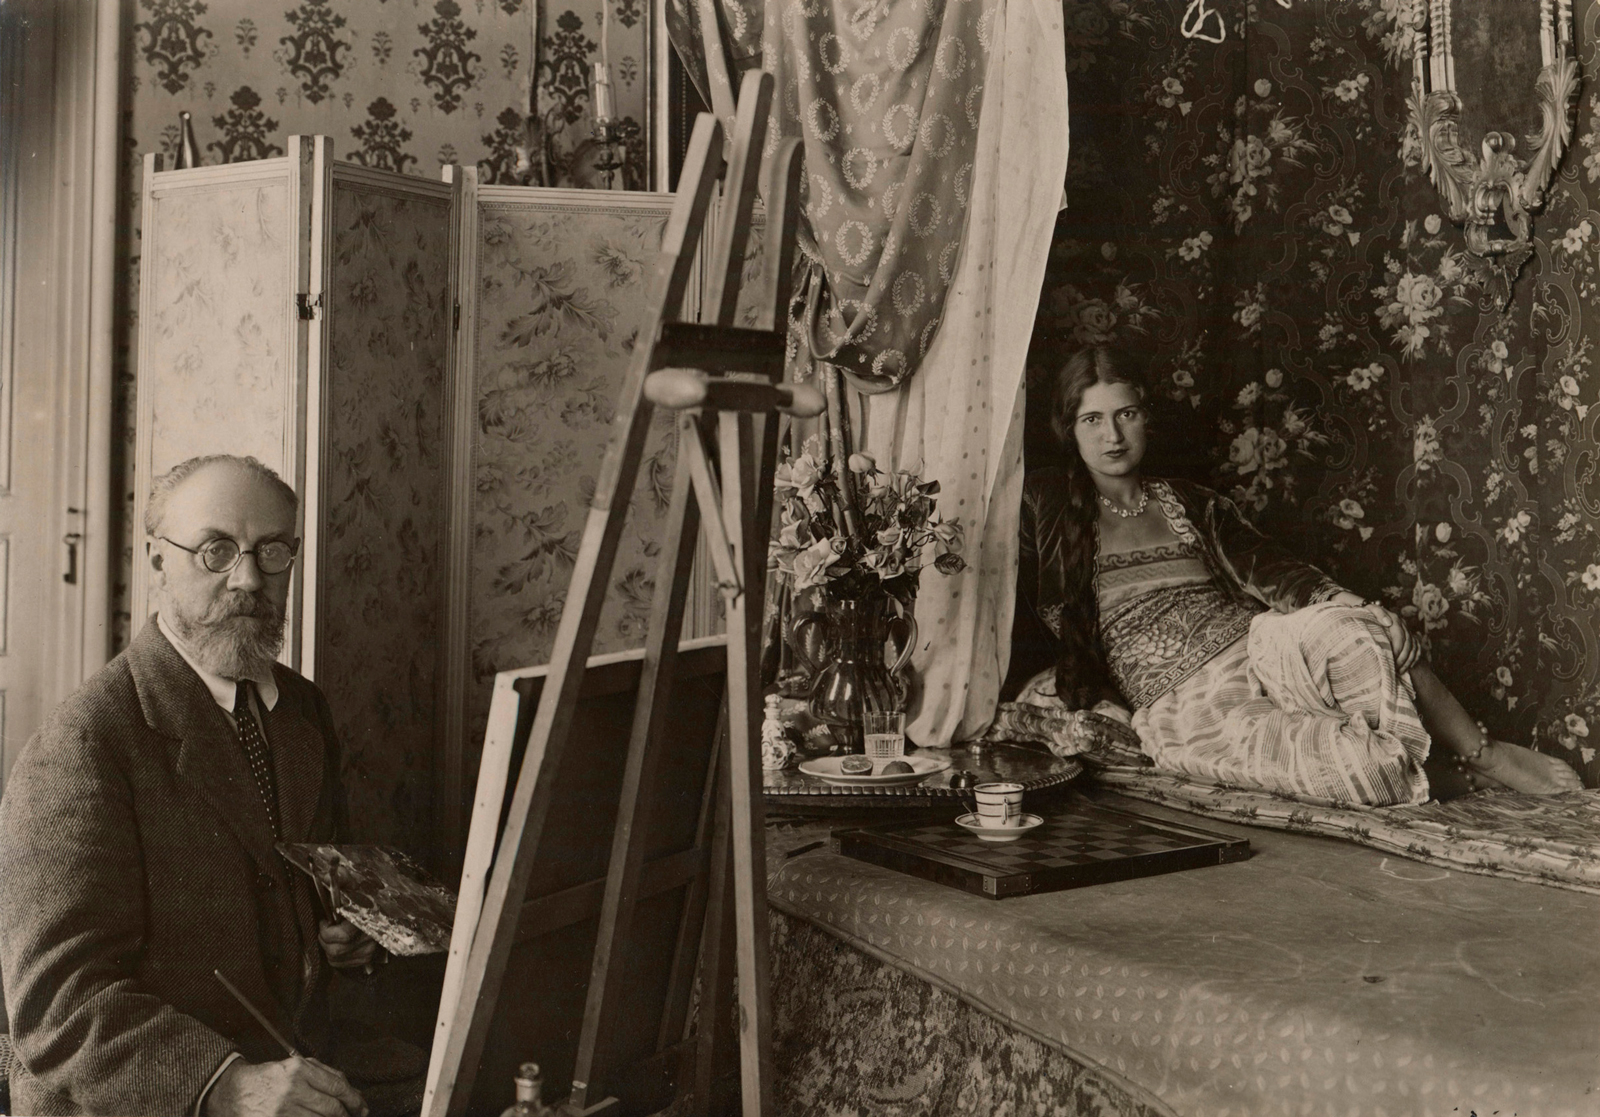 Photograph: Matisse: The Joy Of Things